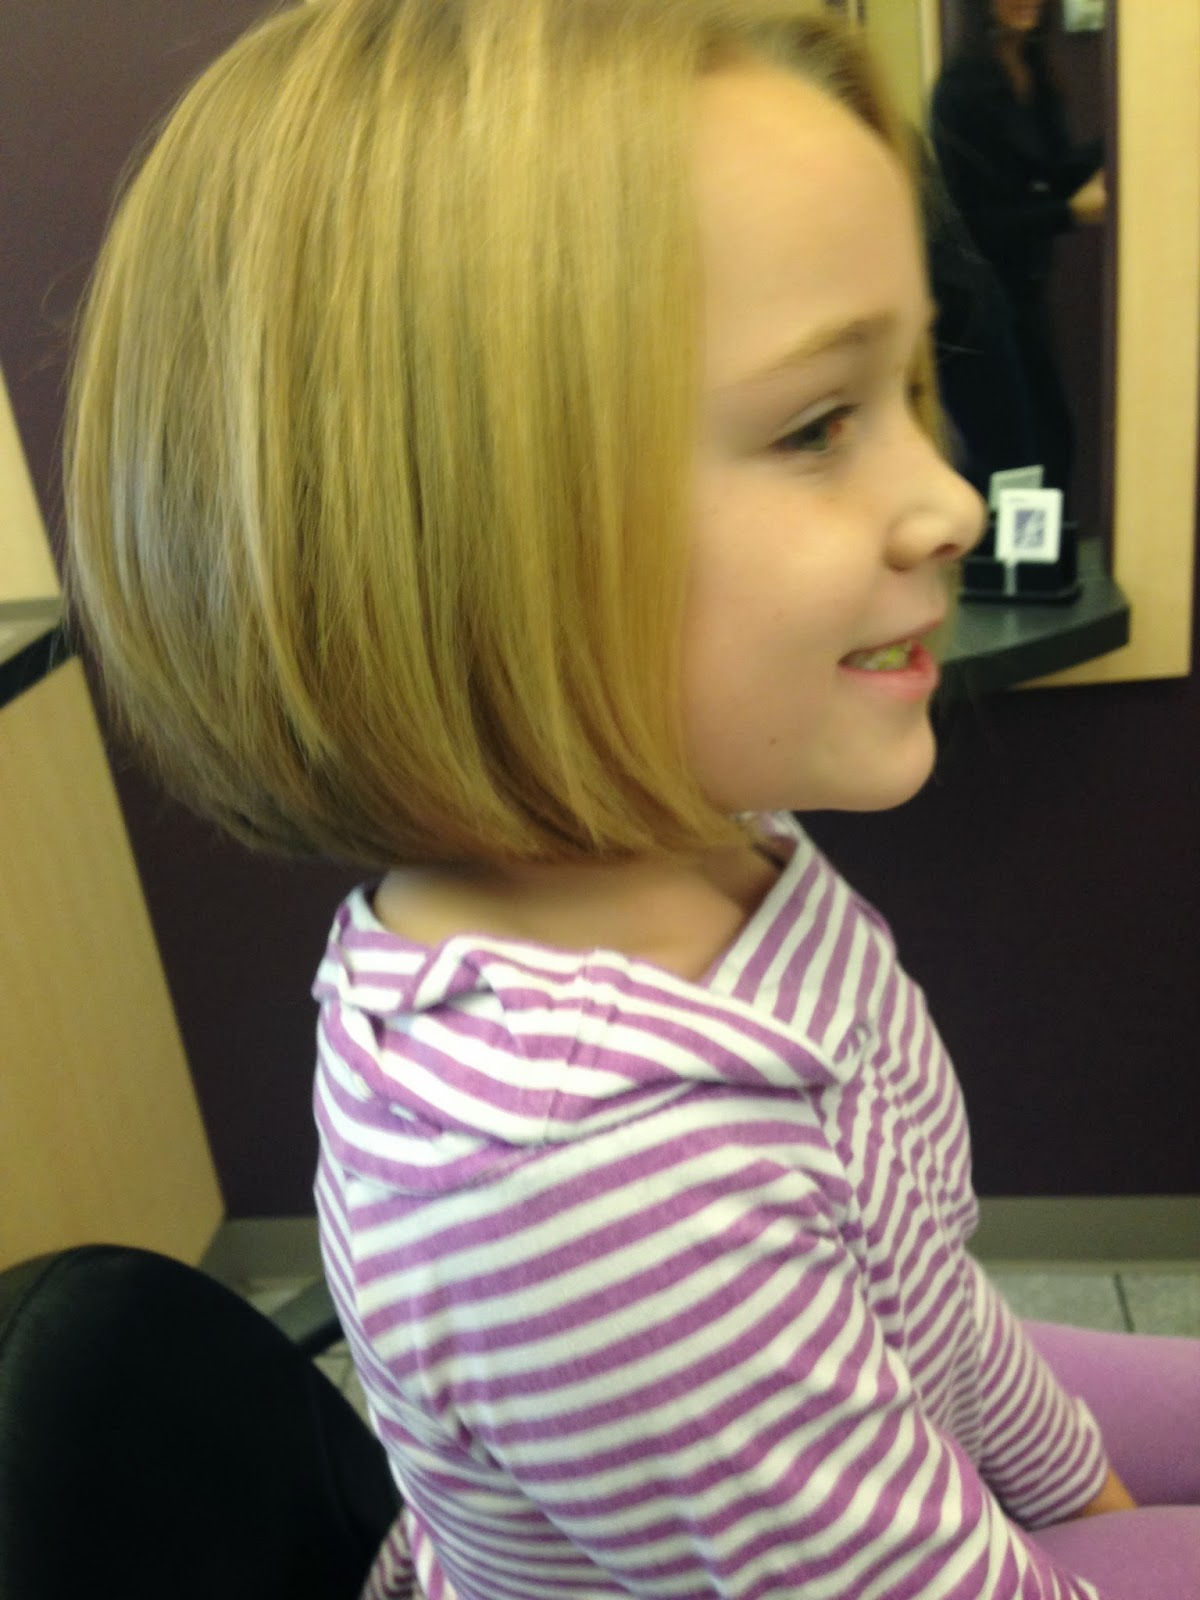 Cute 9 Year Old Haircuts 7 year old got the cutest